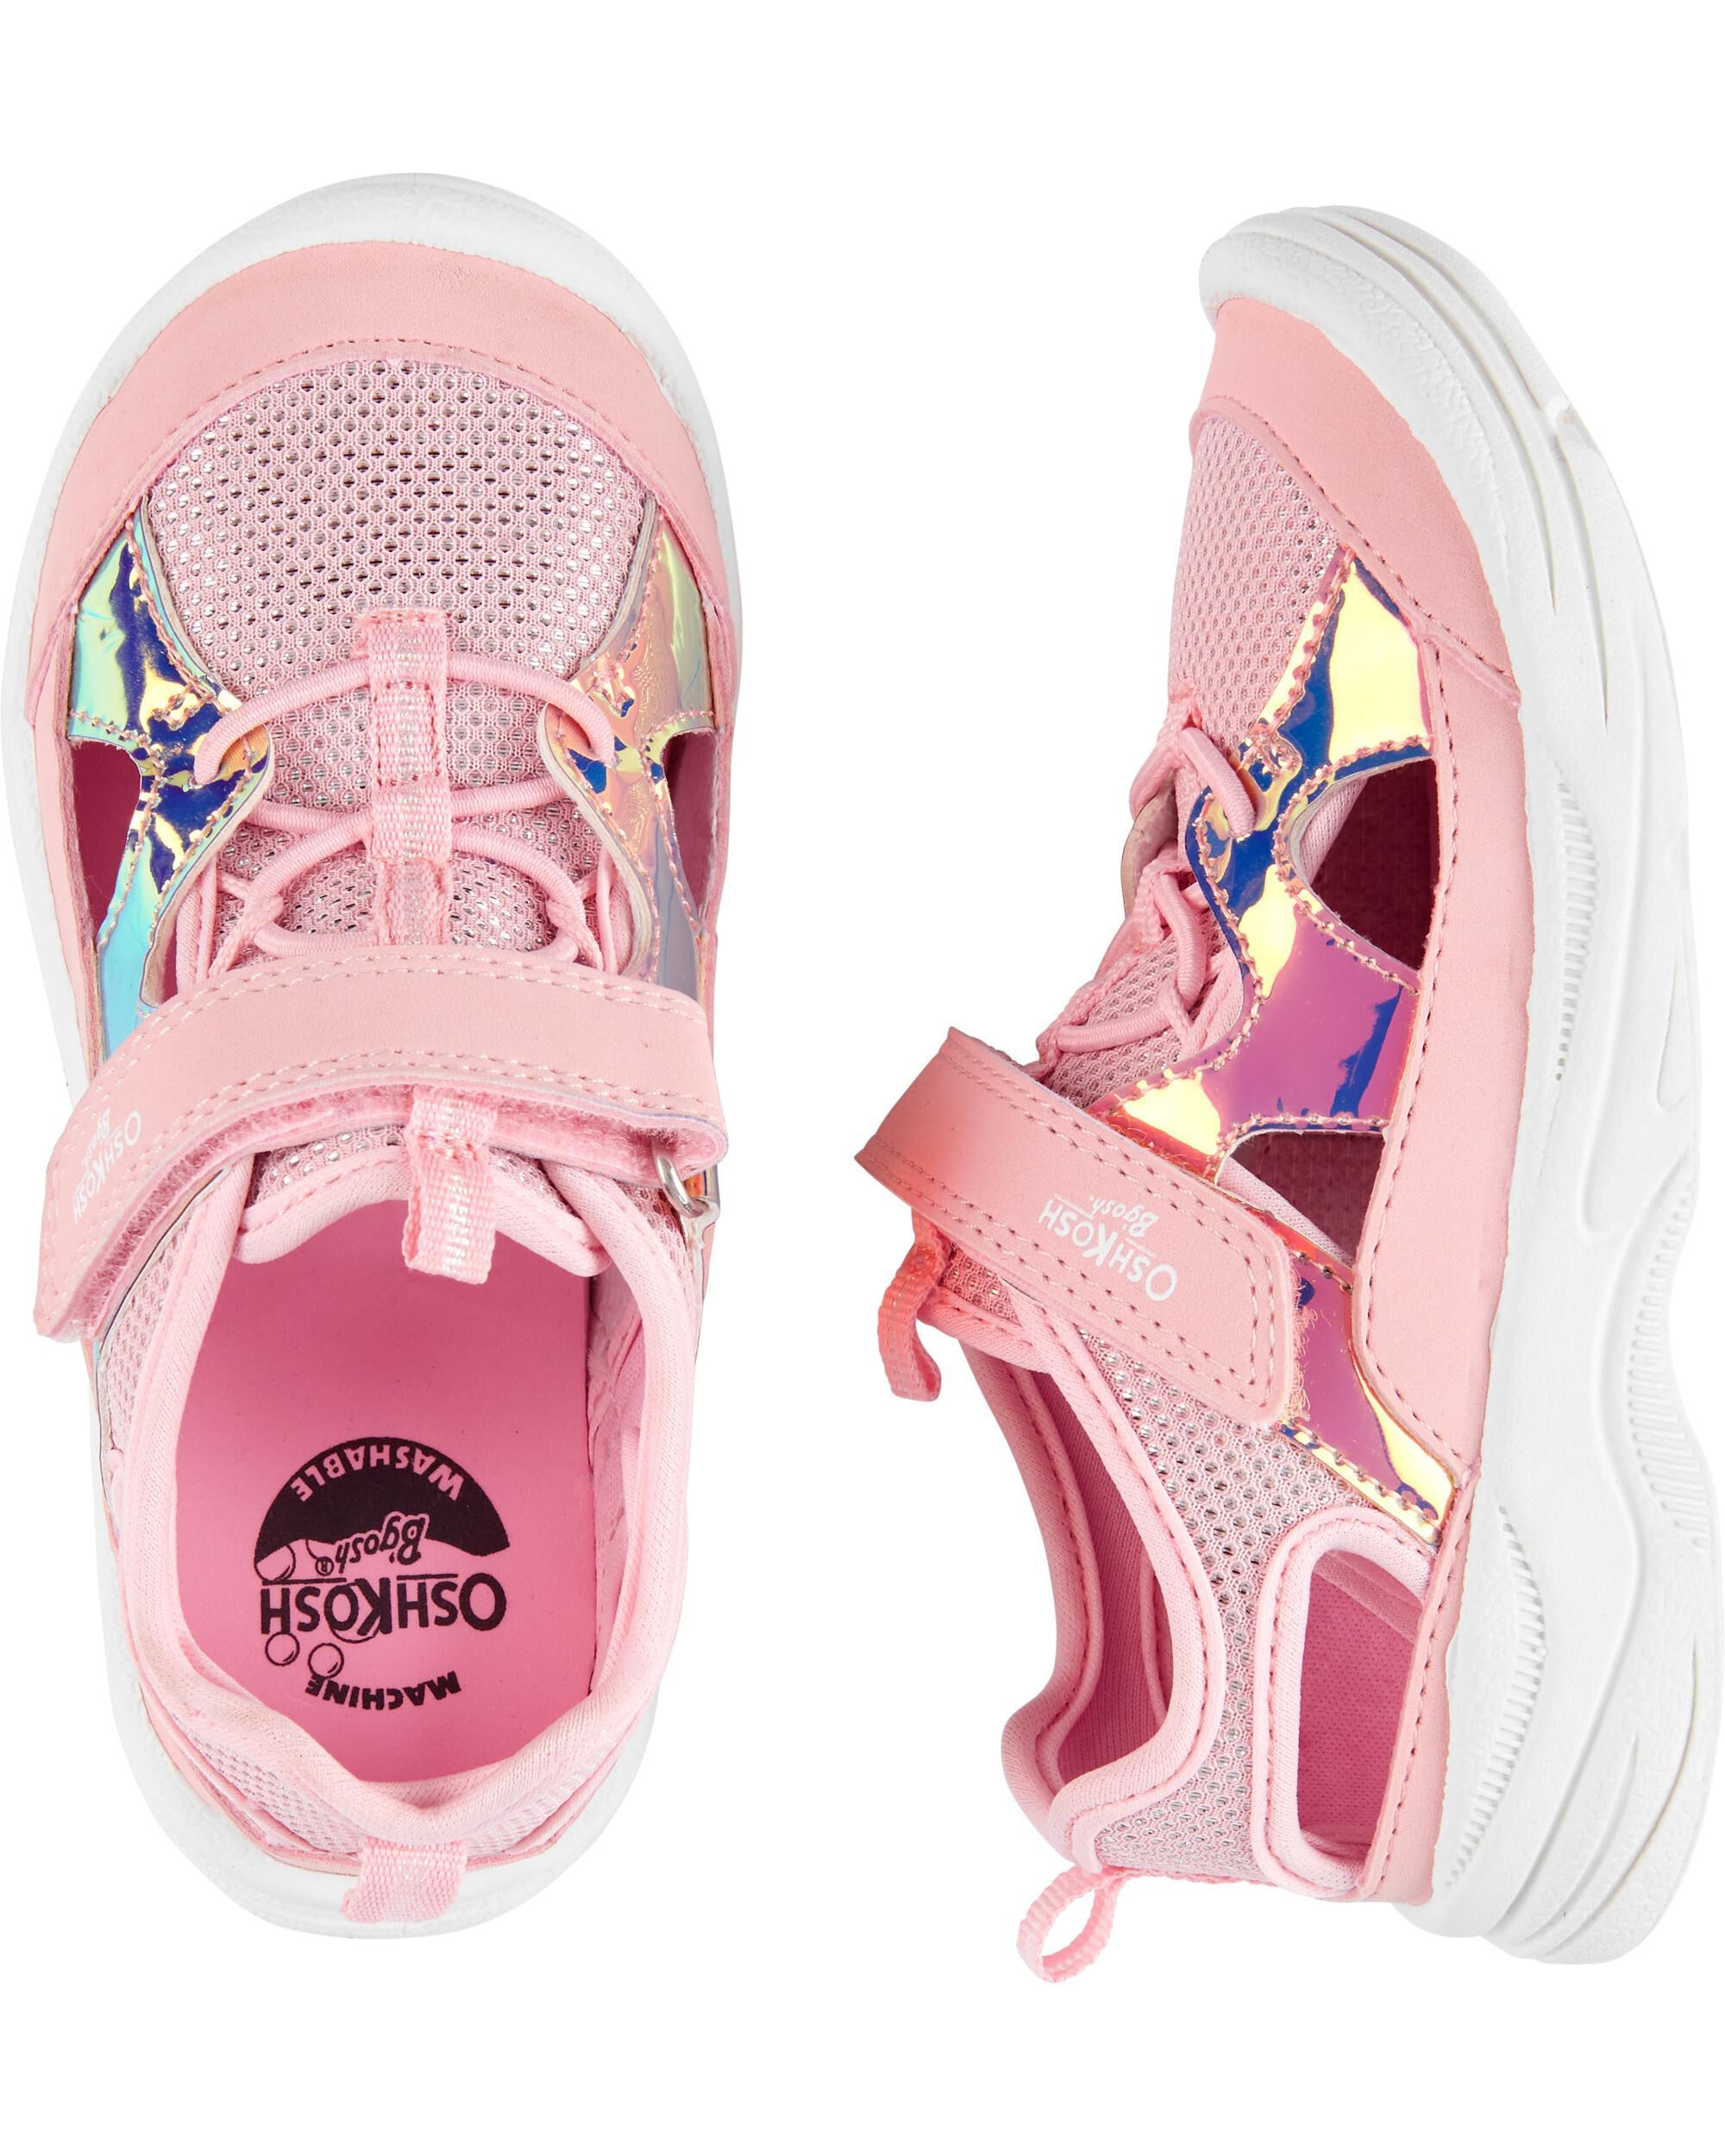 *DOORBUSTER*  Holographic Bump Toe Athletic Sneakers